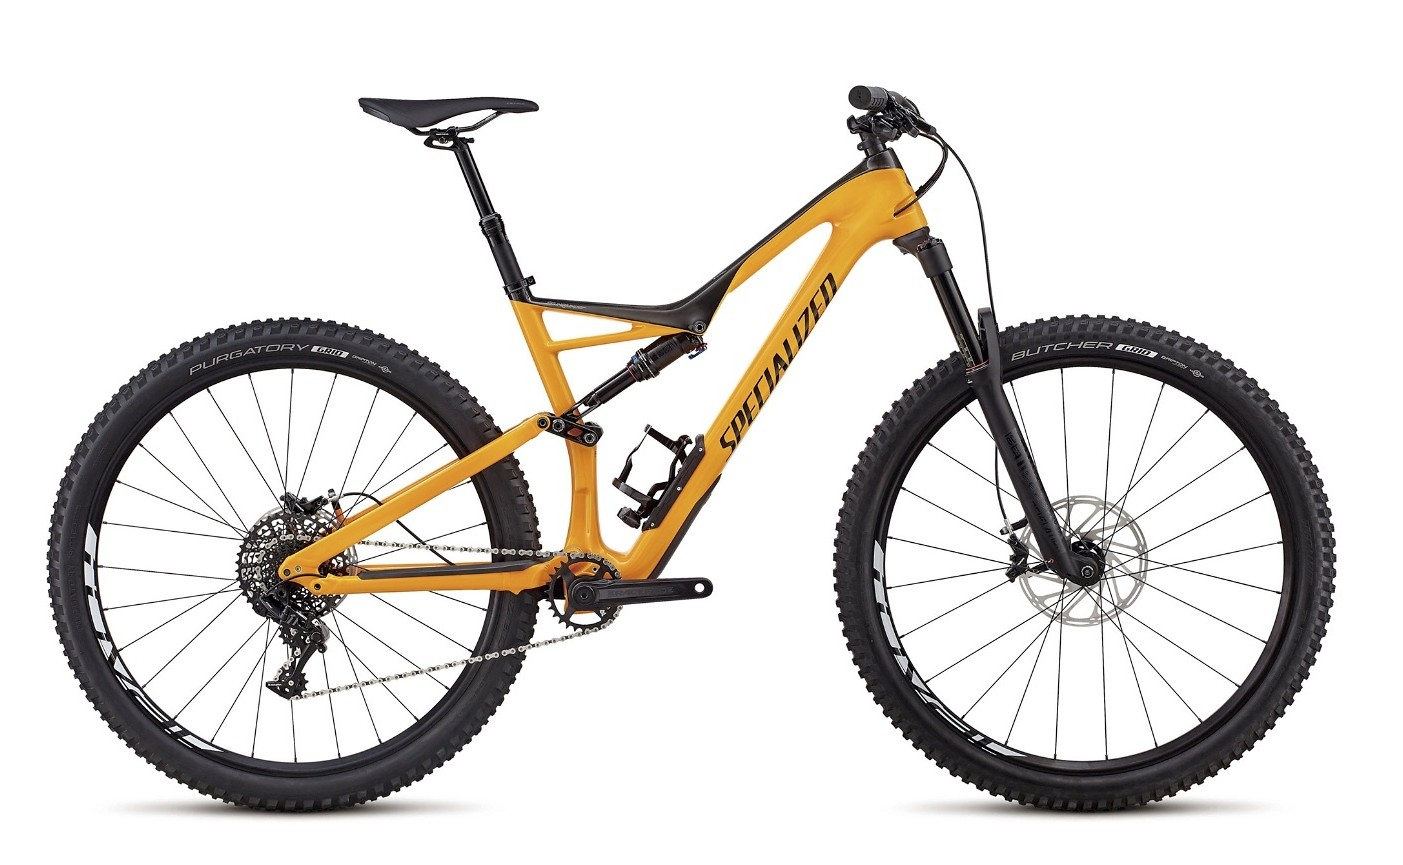 2018 Specialized Stumpjumper Comp Carbon 29/6Fattie Bike - Reviews